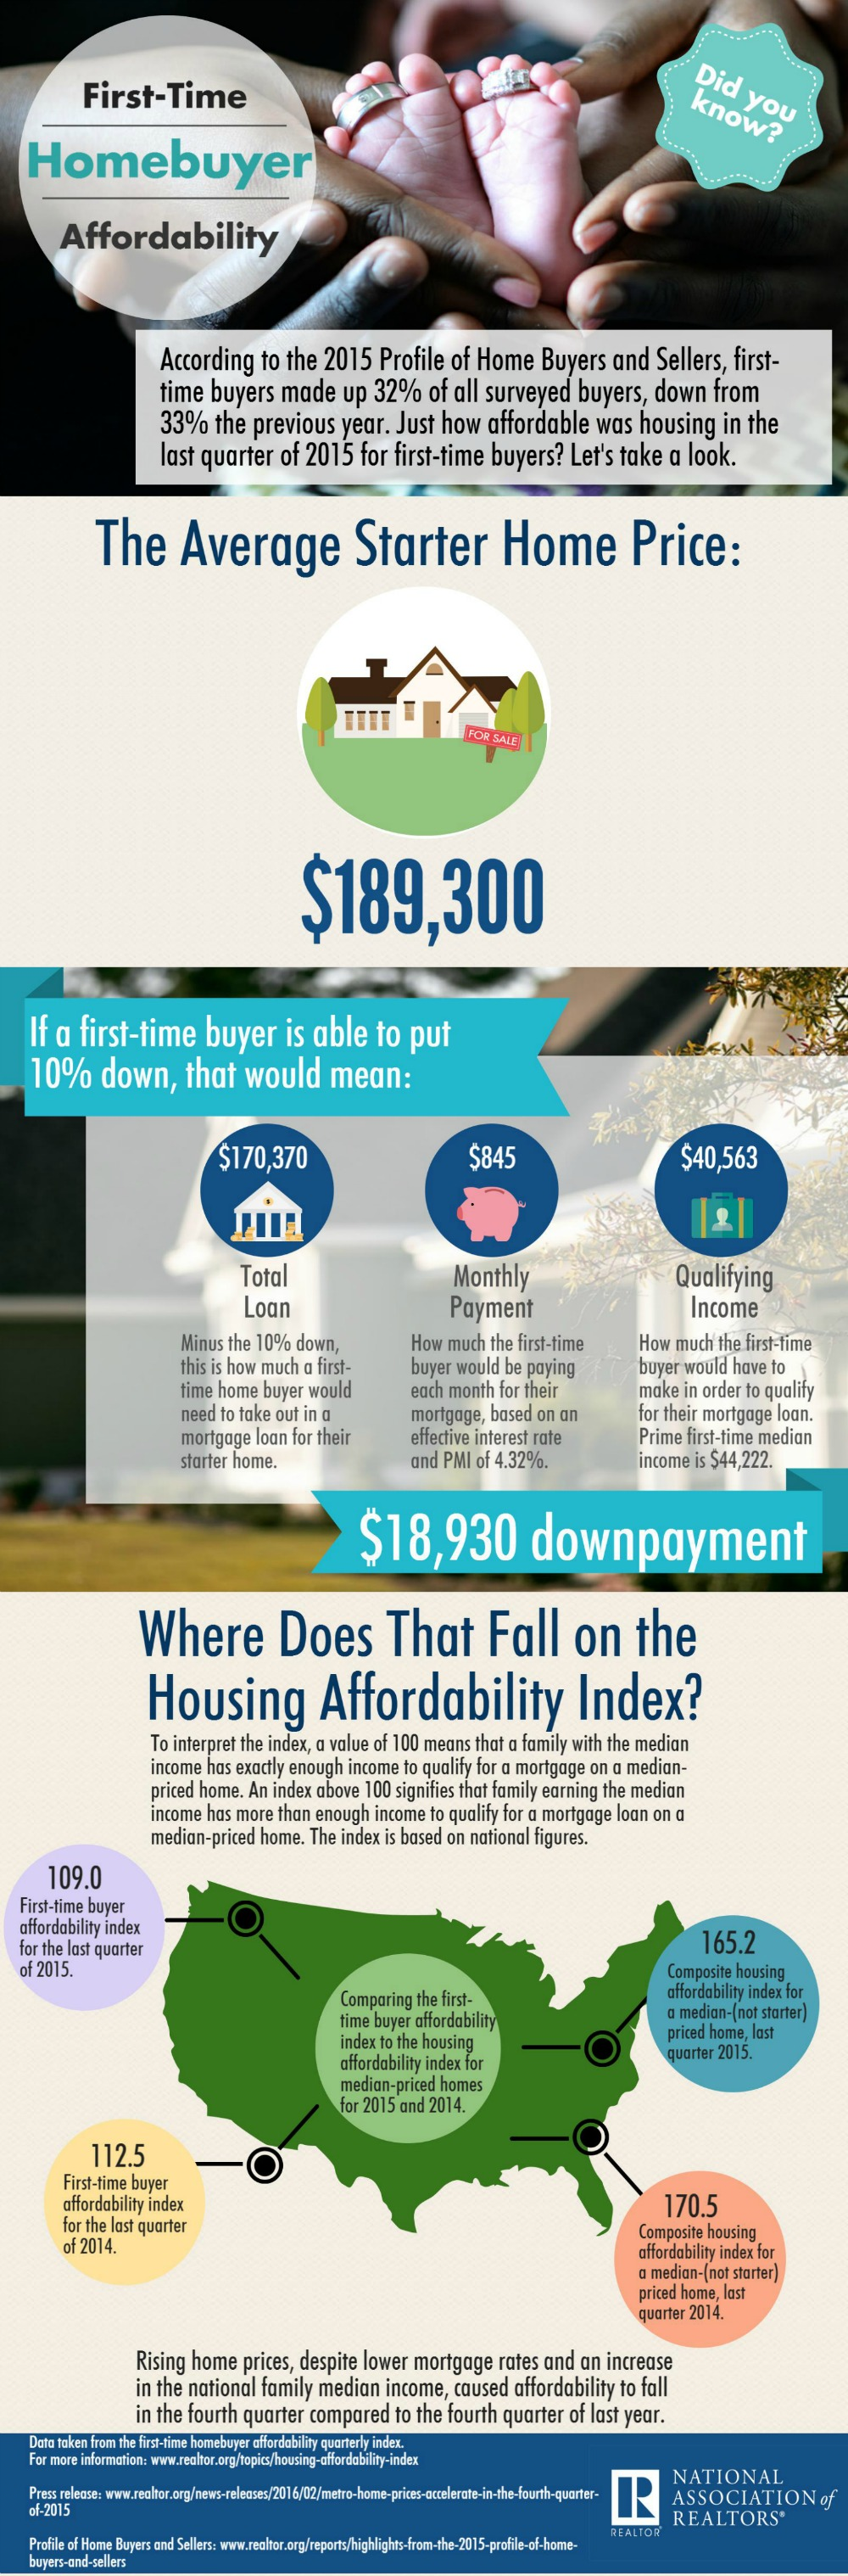 First-Time Homebuyer Affordability Infographic